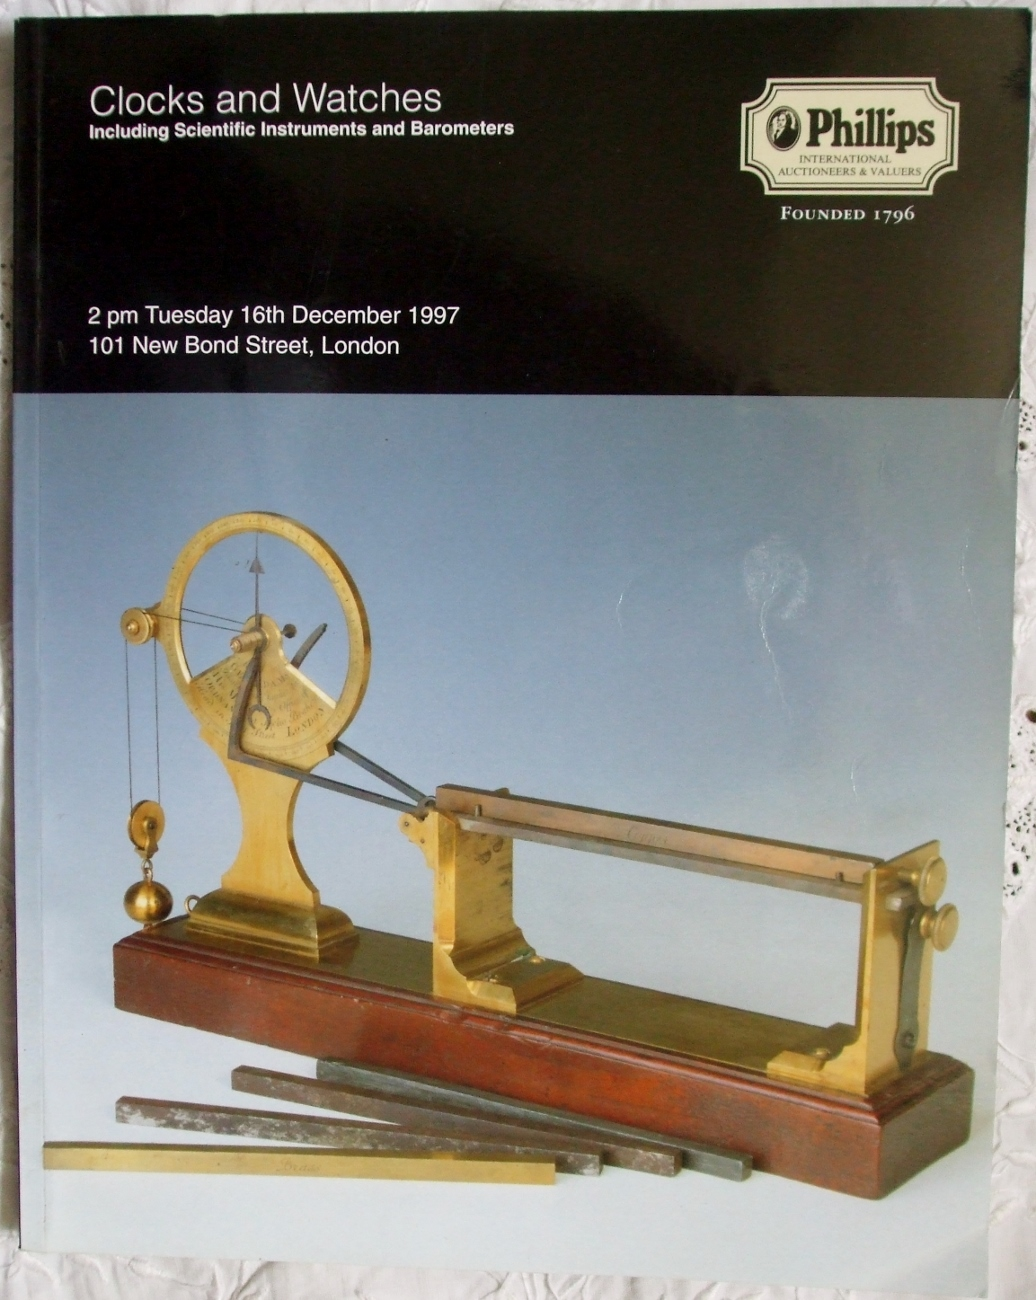 Phillips Clocks and Watches Scientific Instruments Barometers London 16. 12. 1997